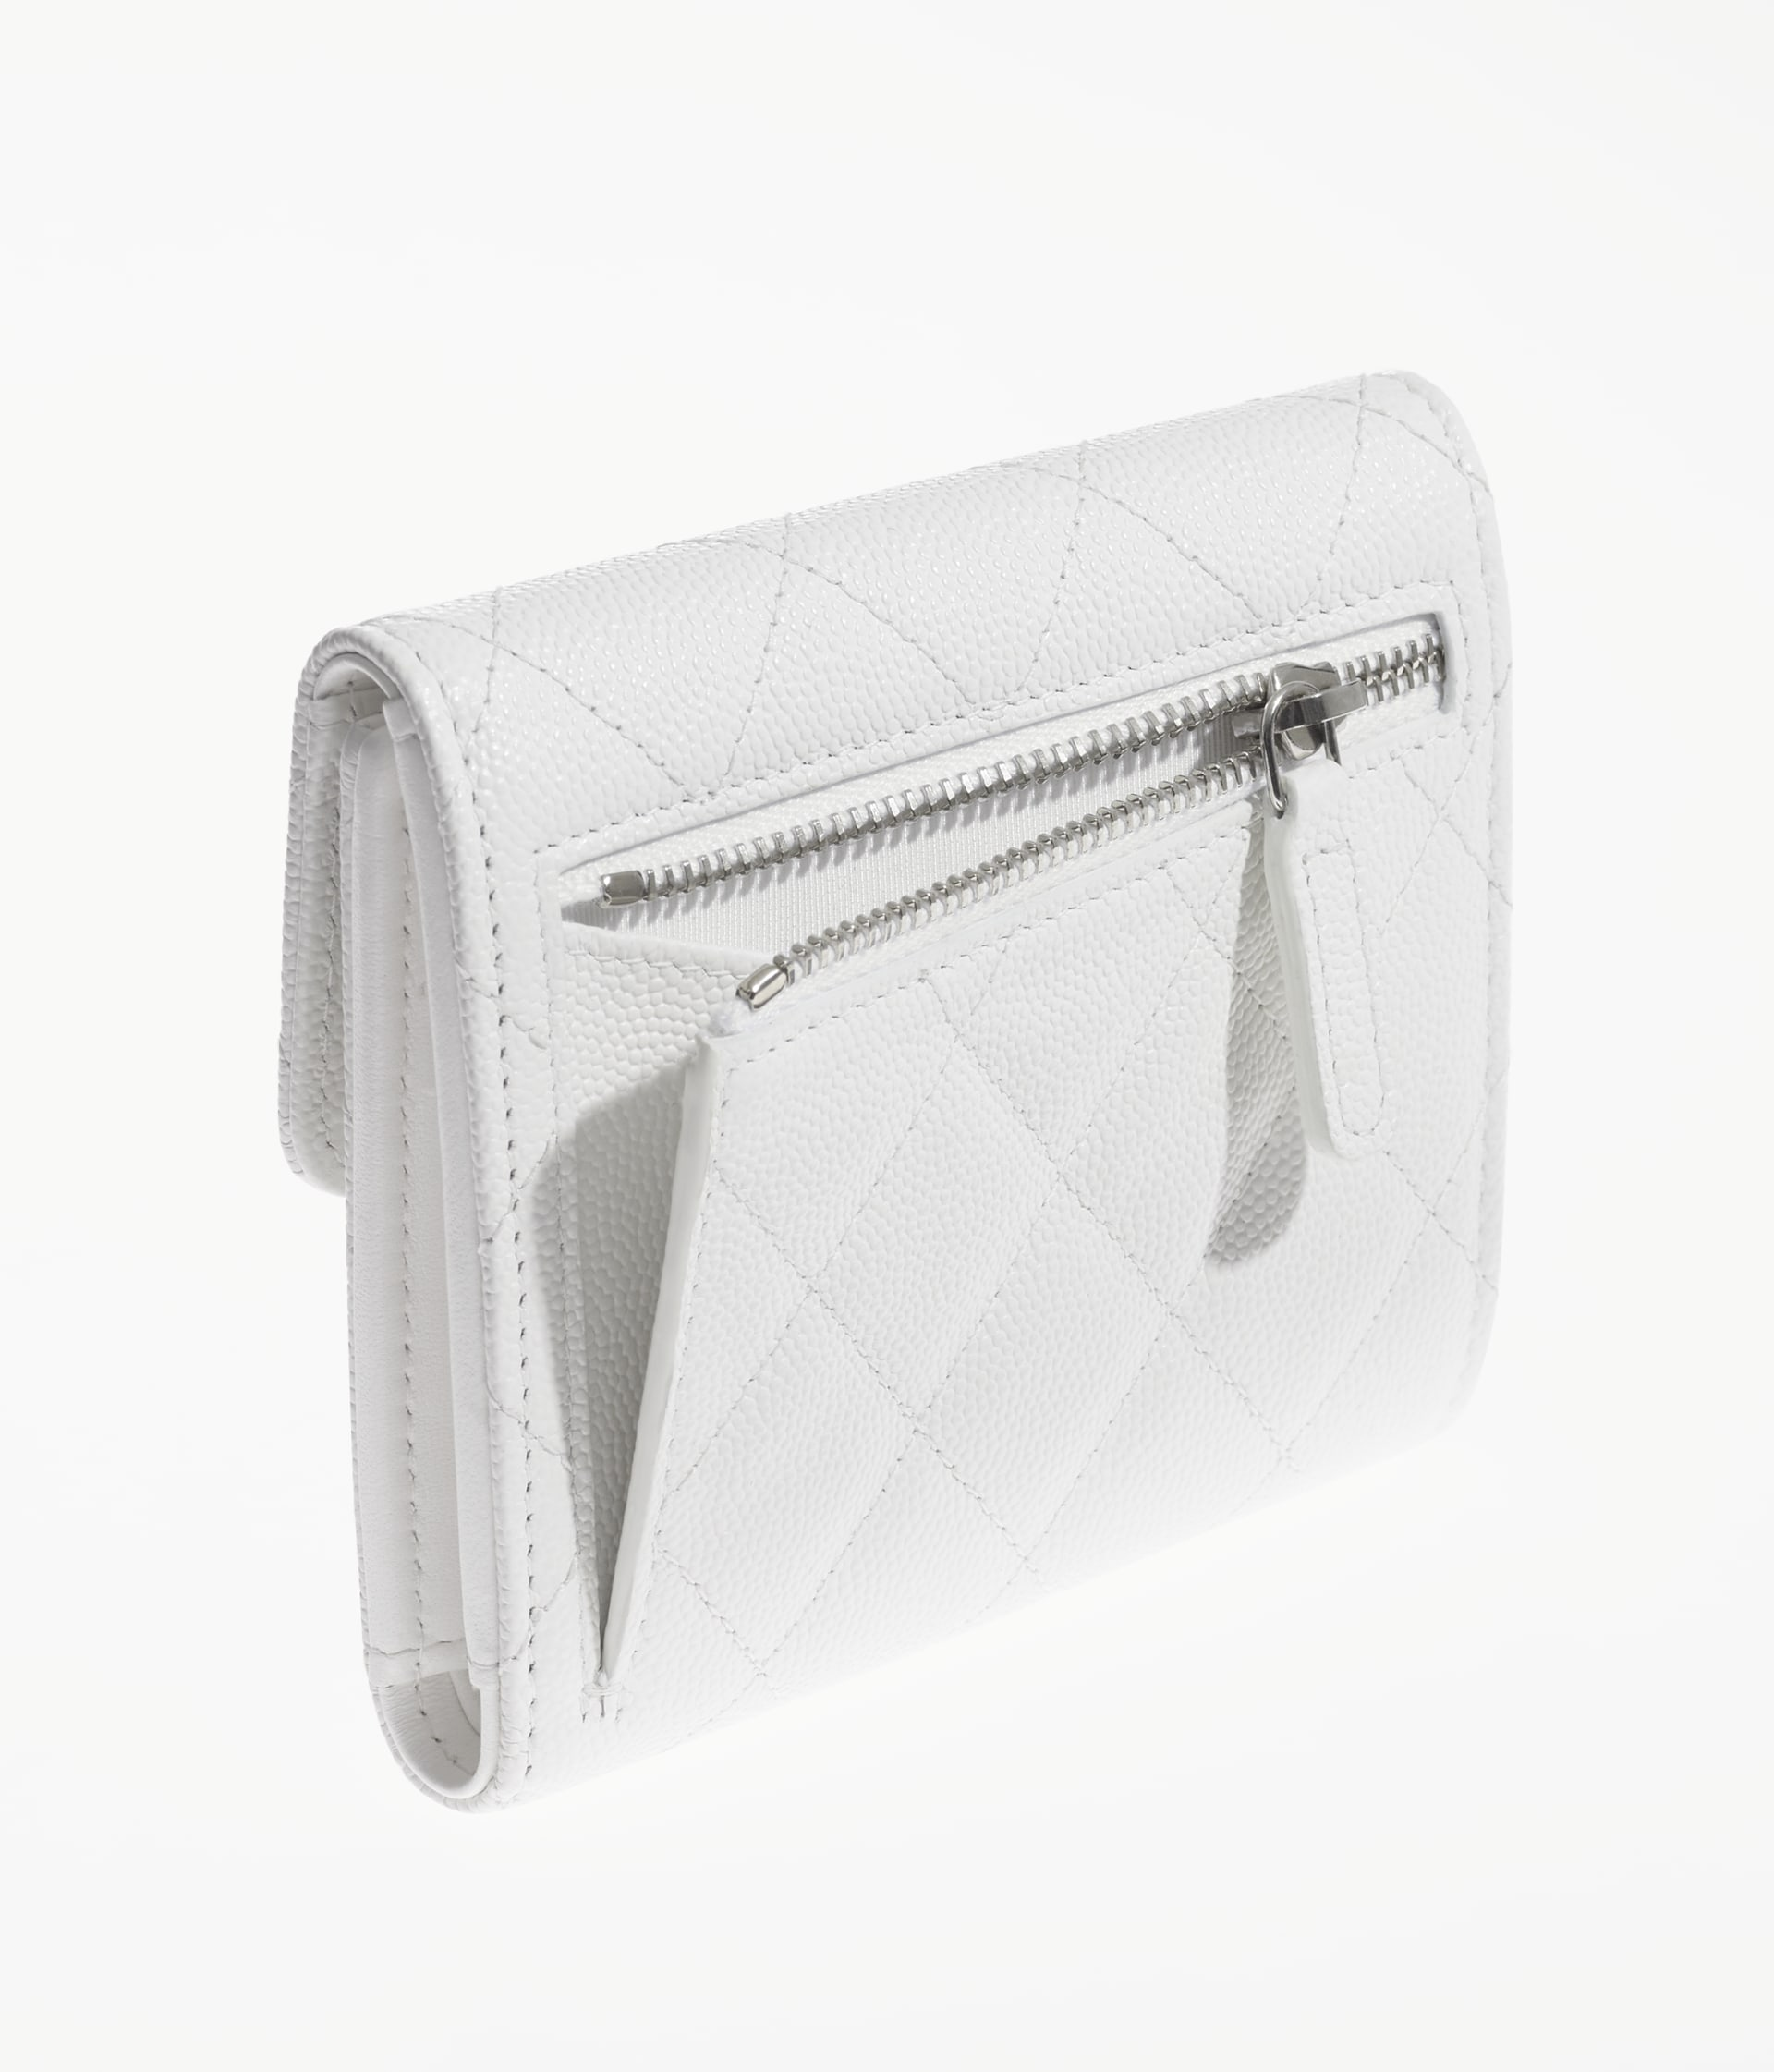 image 4 - Classic Small Flap Wallet - Grained Calfskin & Silver-Tone Metal - White